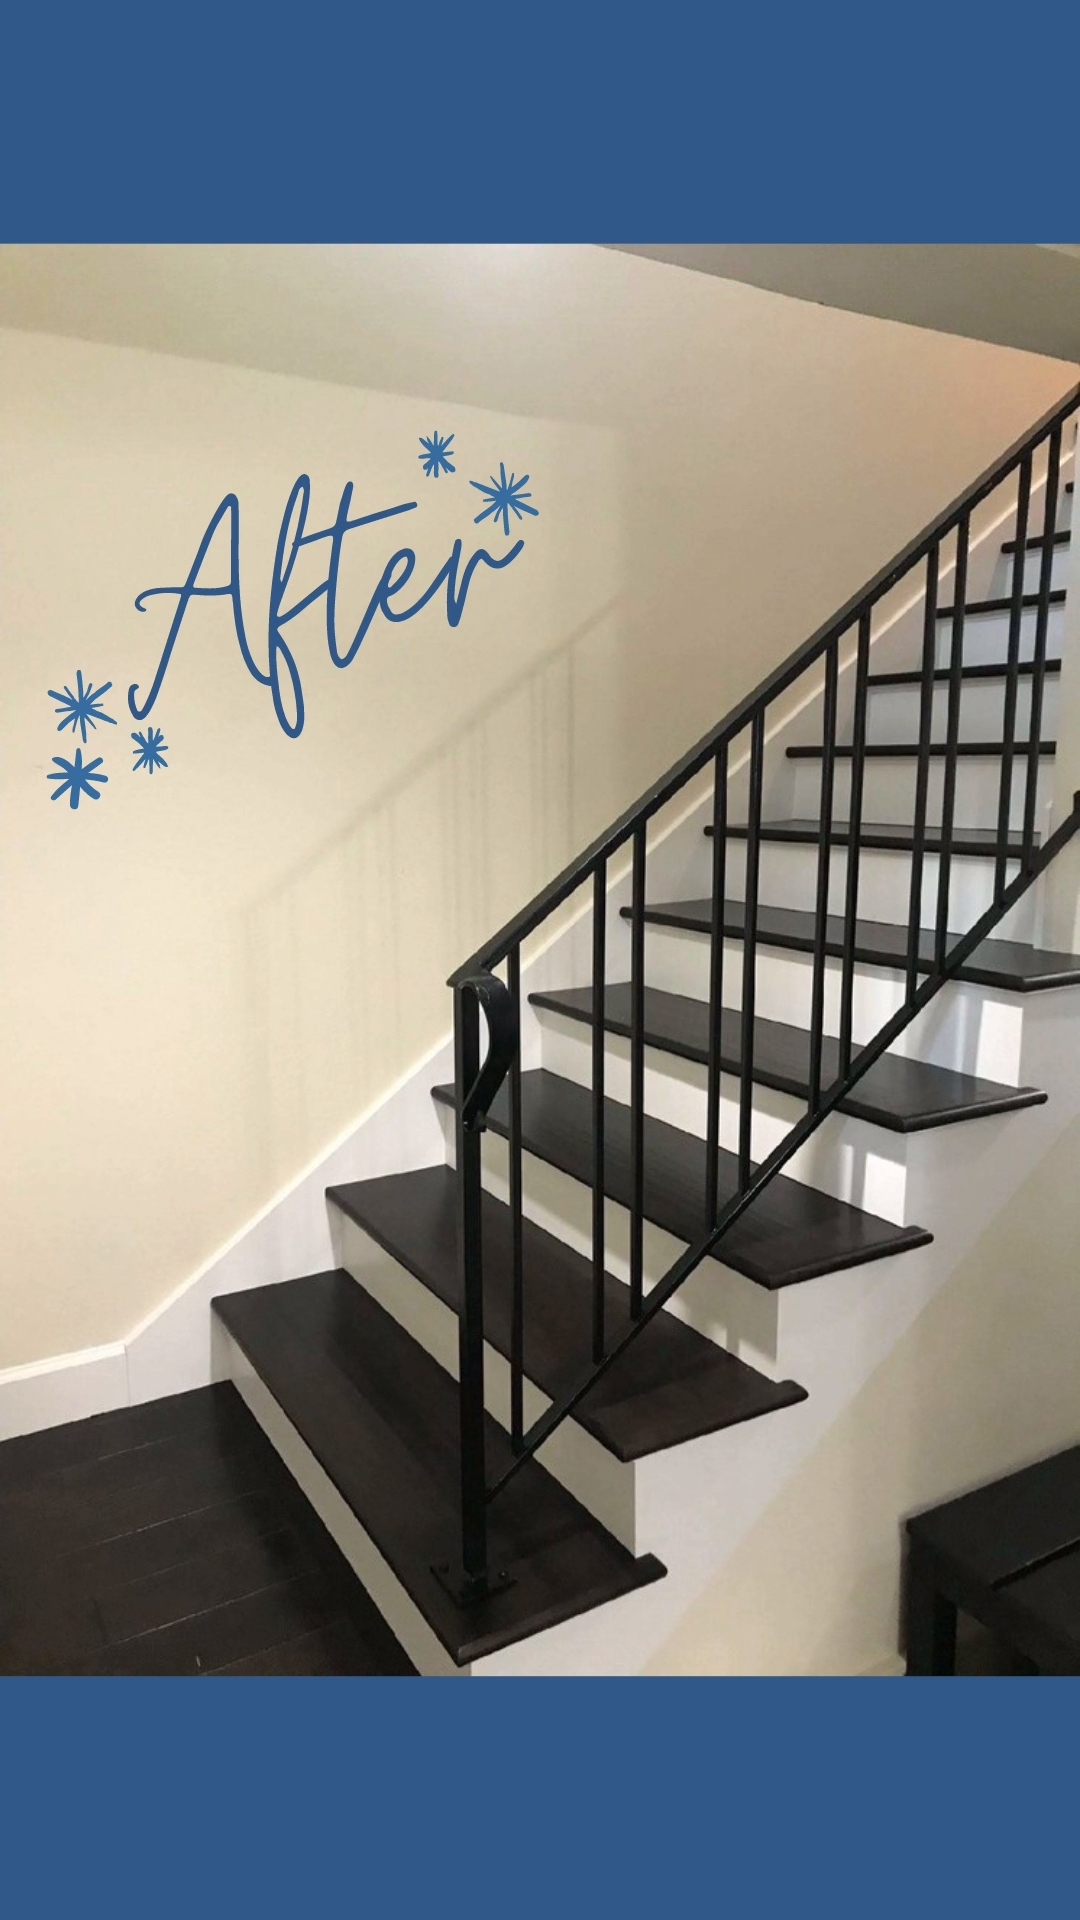 Sleek staircase transformation. #retroaesthetic #retrohomedecor #myvintagehomestyle #bathroomtiles #bathroomremodel⁣ #bathroomrenovation #bathroomdesign #generalcontratorseattle #eclecticdecor #eclectichome #renovationlife #homerenovation #homeimprovements #kitchendecor #residentialconstruction #stairs #seattlerealestate #tacomarealestate #seatacrealestate #seattleremodelers #issaquahcontractor #seattlehomebuilders #issaquah #sammamishrealestate #staircase